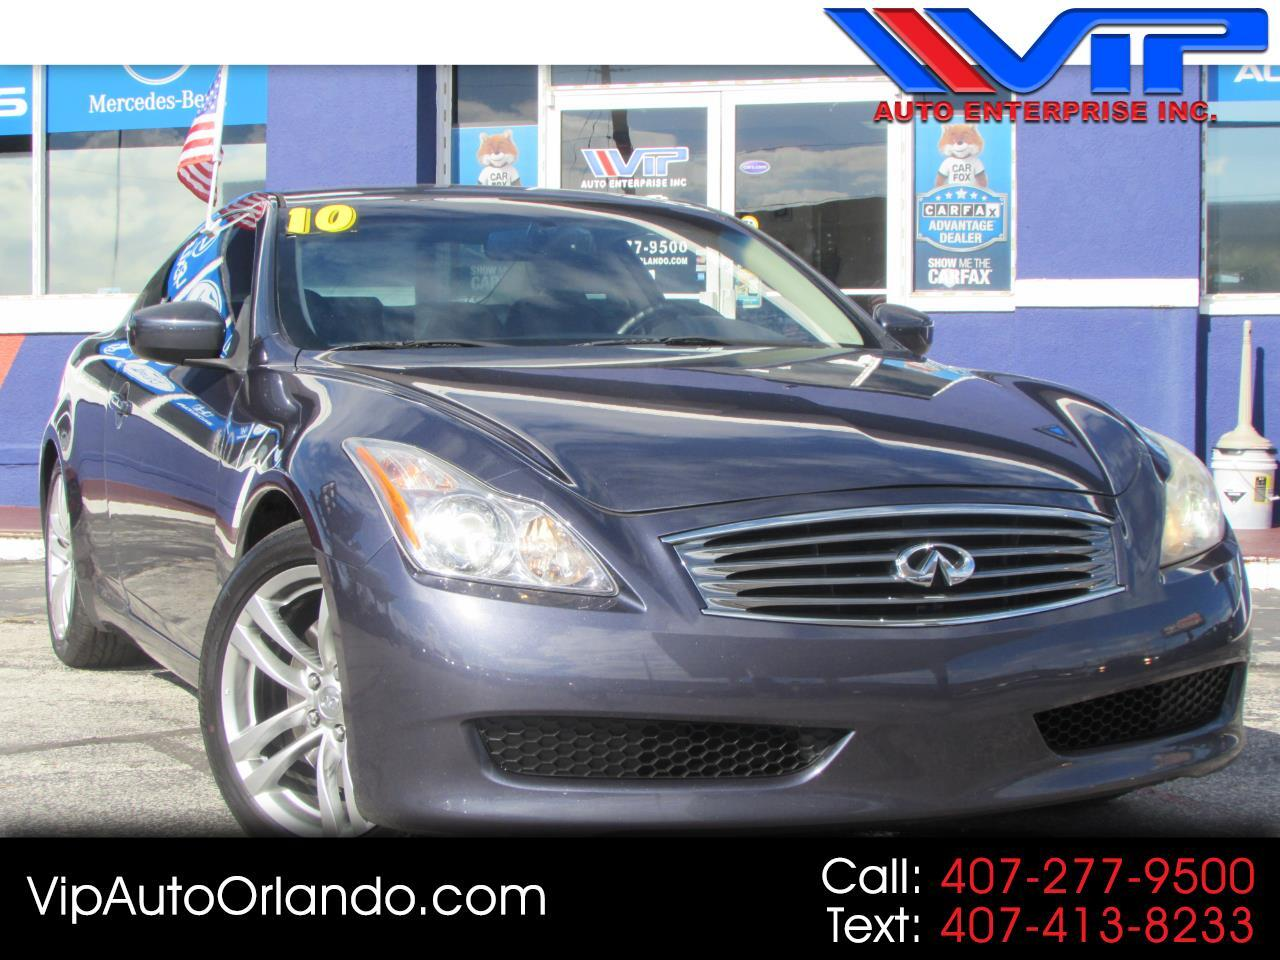 2010 Infiniti G37 Coupe 2dr Journey RWD